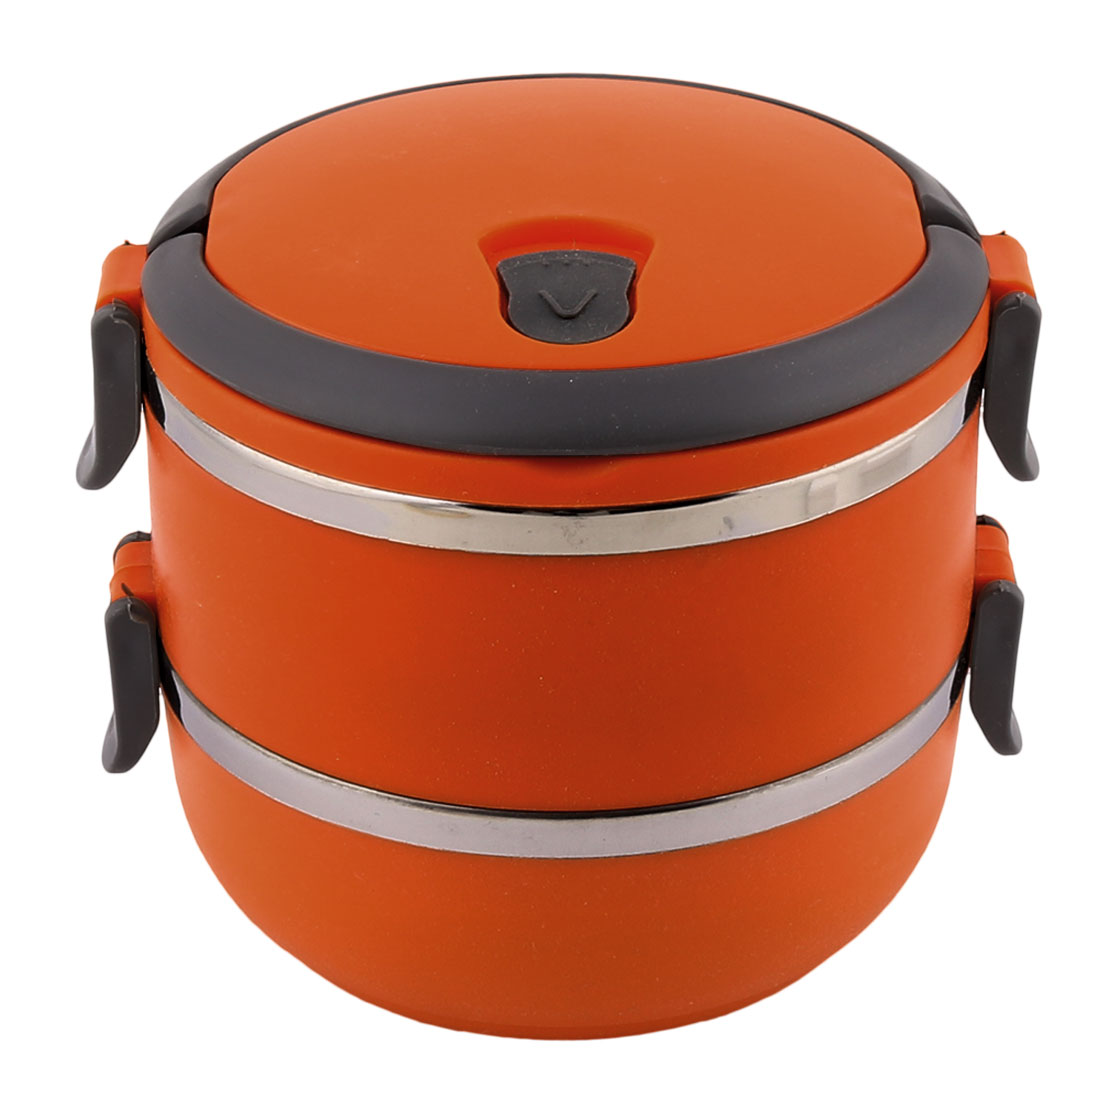 Home School Office Plastic Handle Stainless Steel Double Layers Lunch Box Food Container Orange